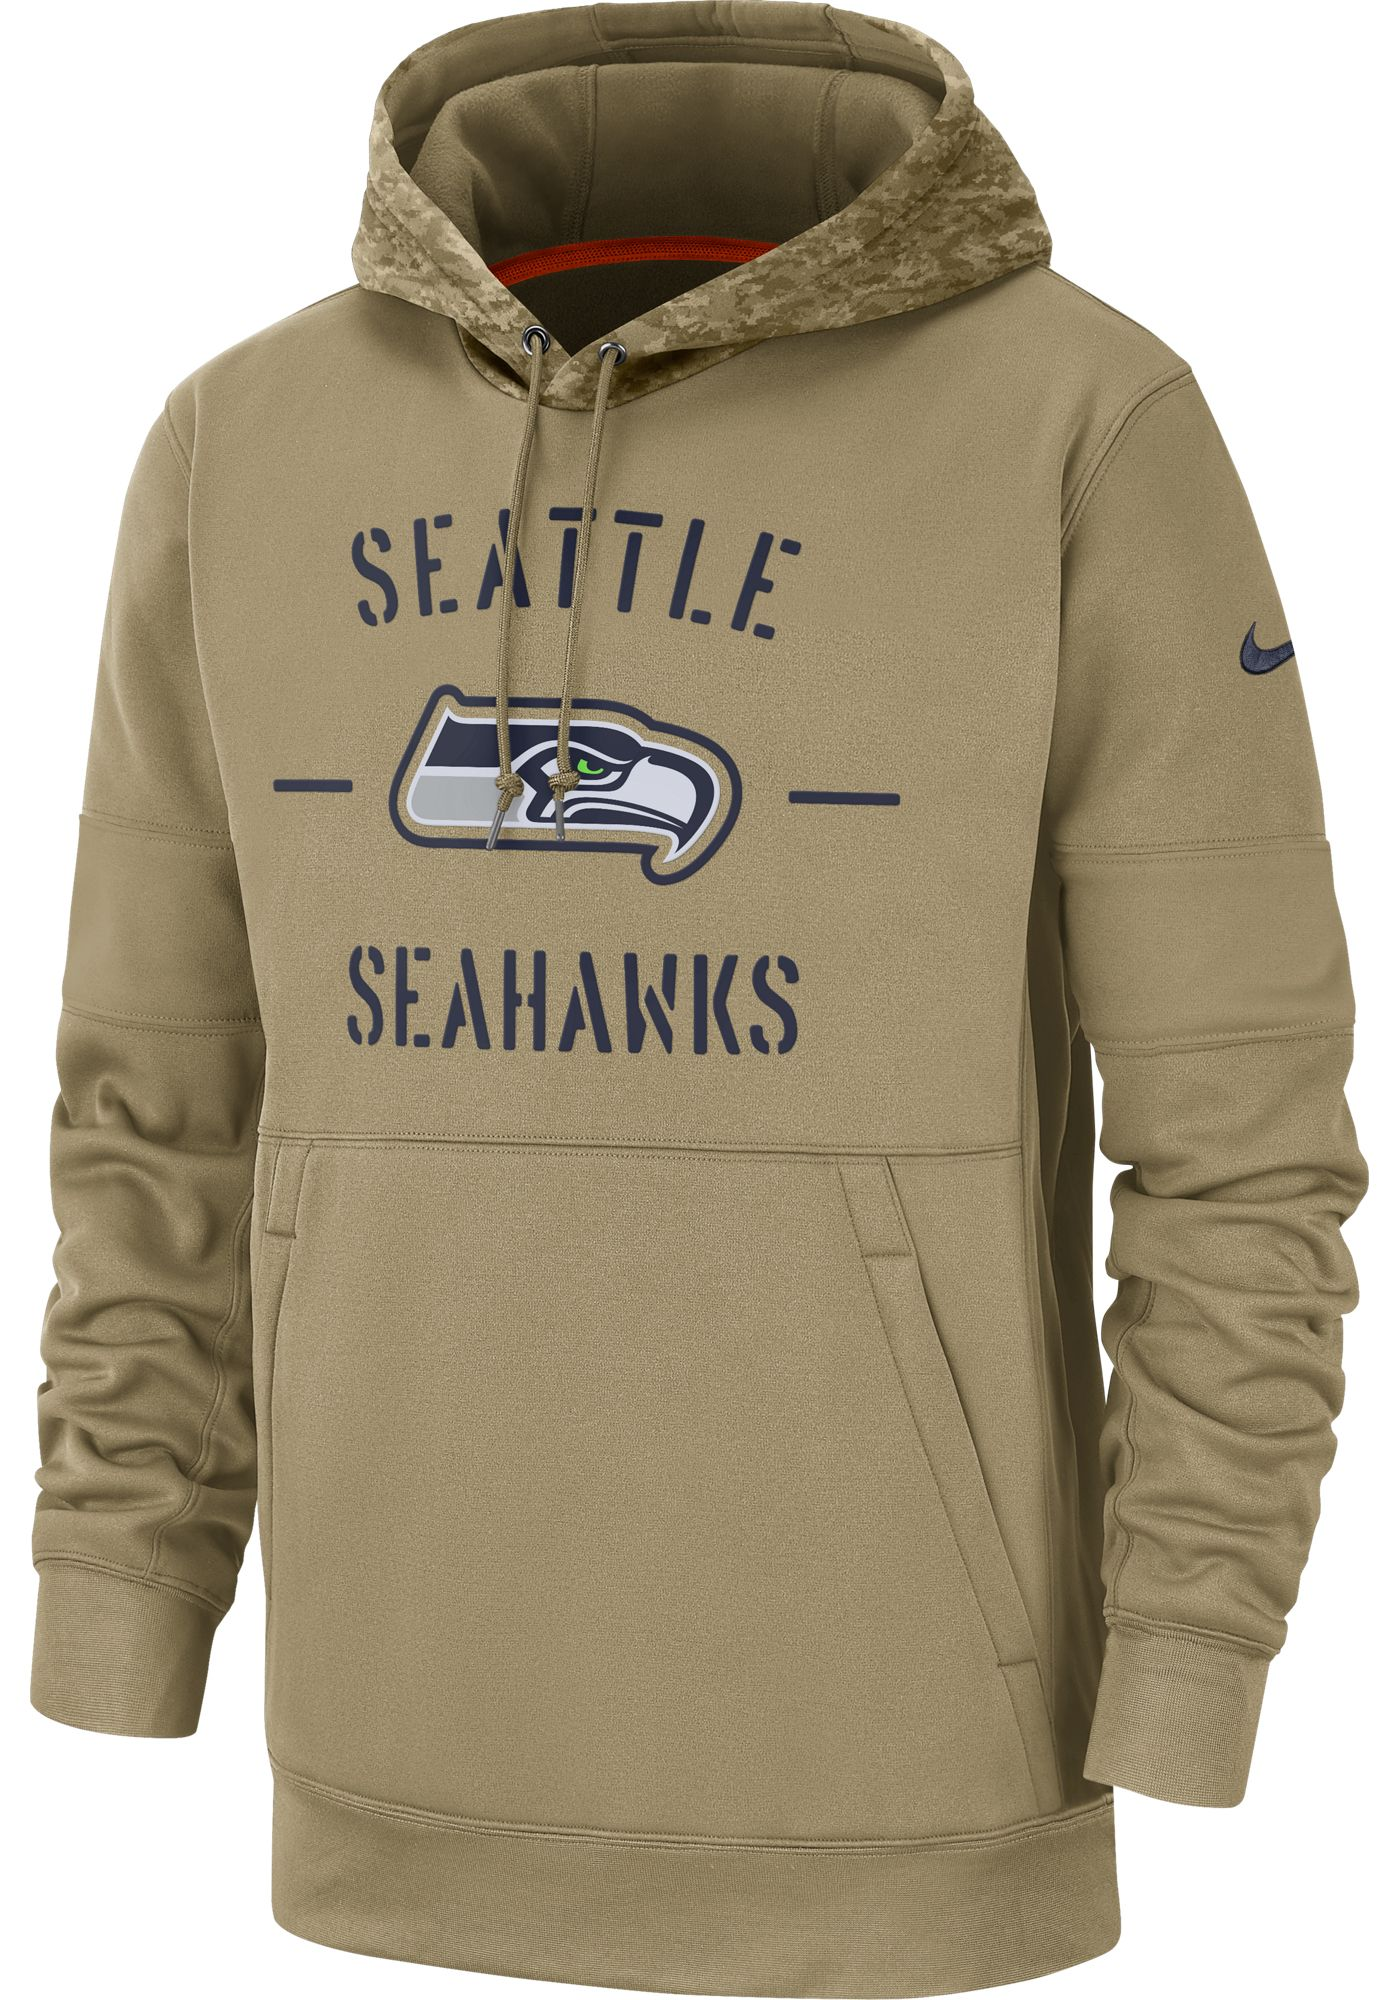 Nike Men's Salute to Service Seattle Seahawks Therma-FIT Beige Camo Hoodie